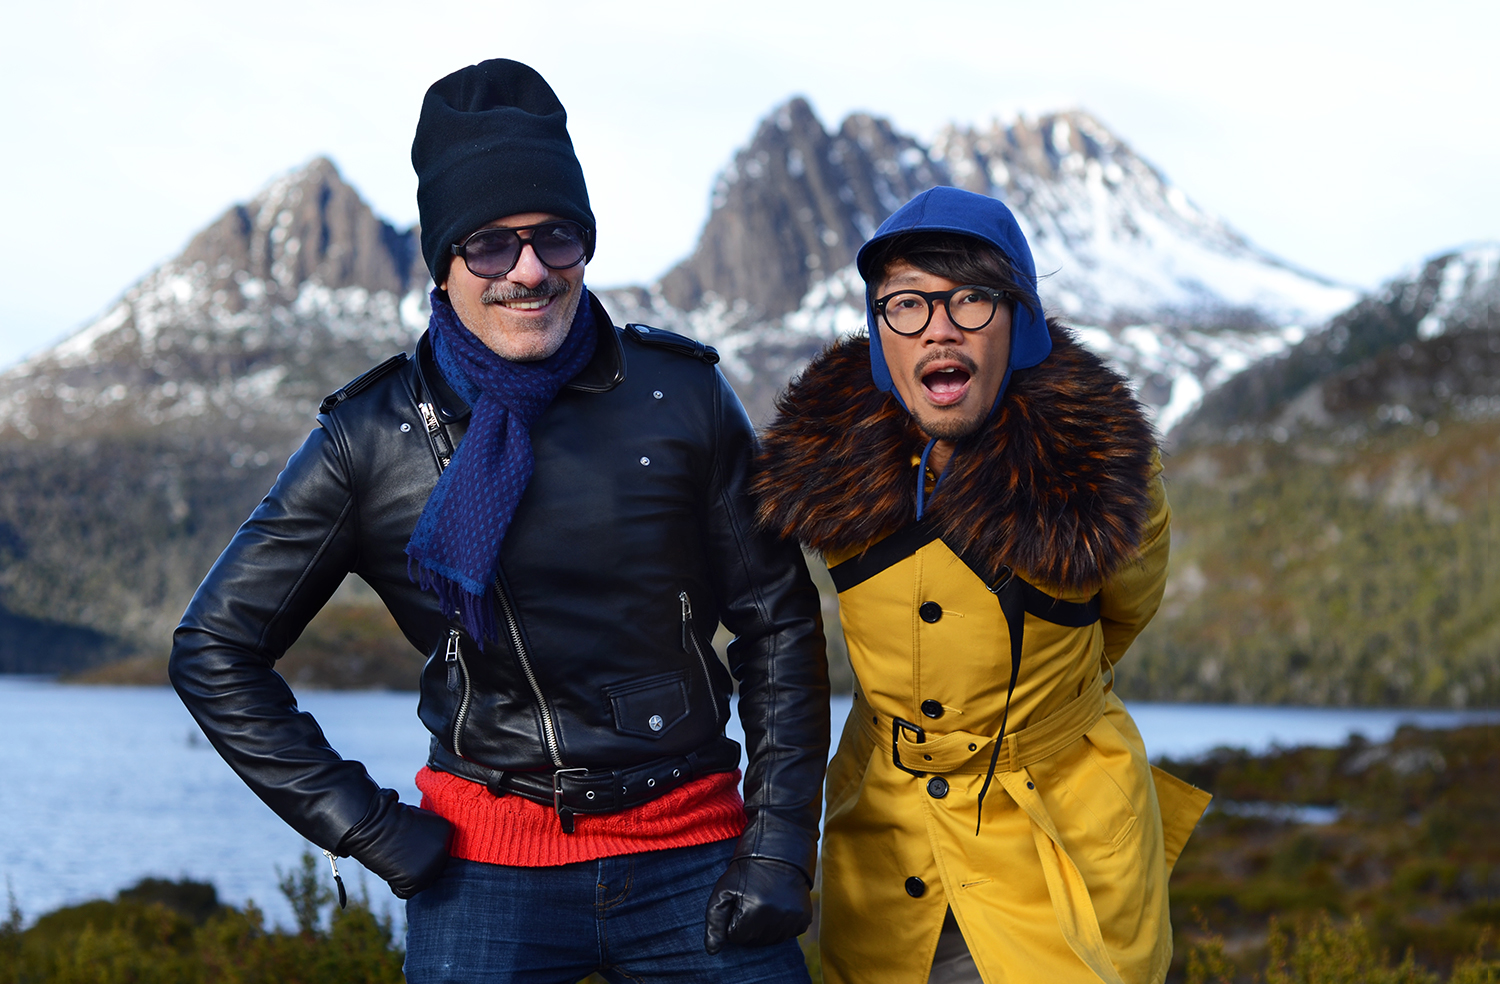 Cradle Mountain, Lake St Clair National Park, Fifth highest mountain in Tasmania, Dries Van Noten mens fur collar, Burberry mens mustard yellow coat, Jean Paul Gaultier leather biker jacket, Australia premium travel blog